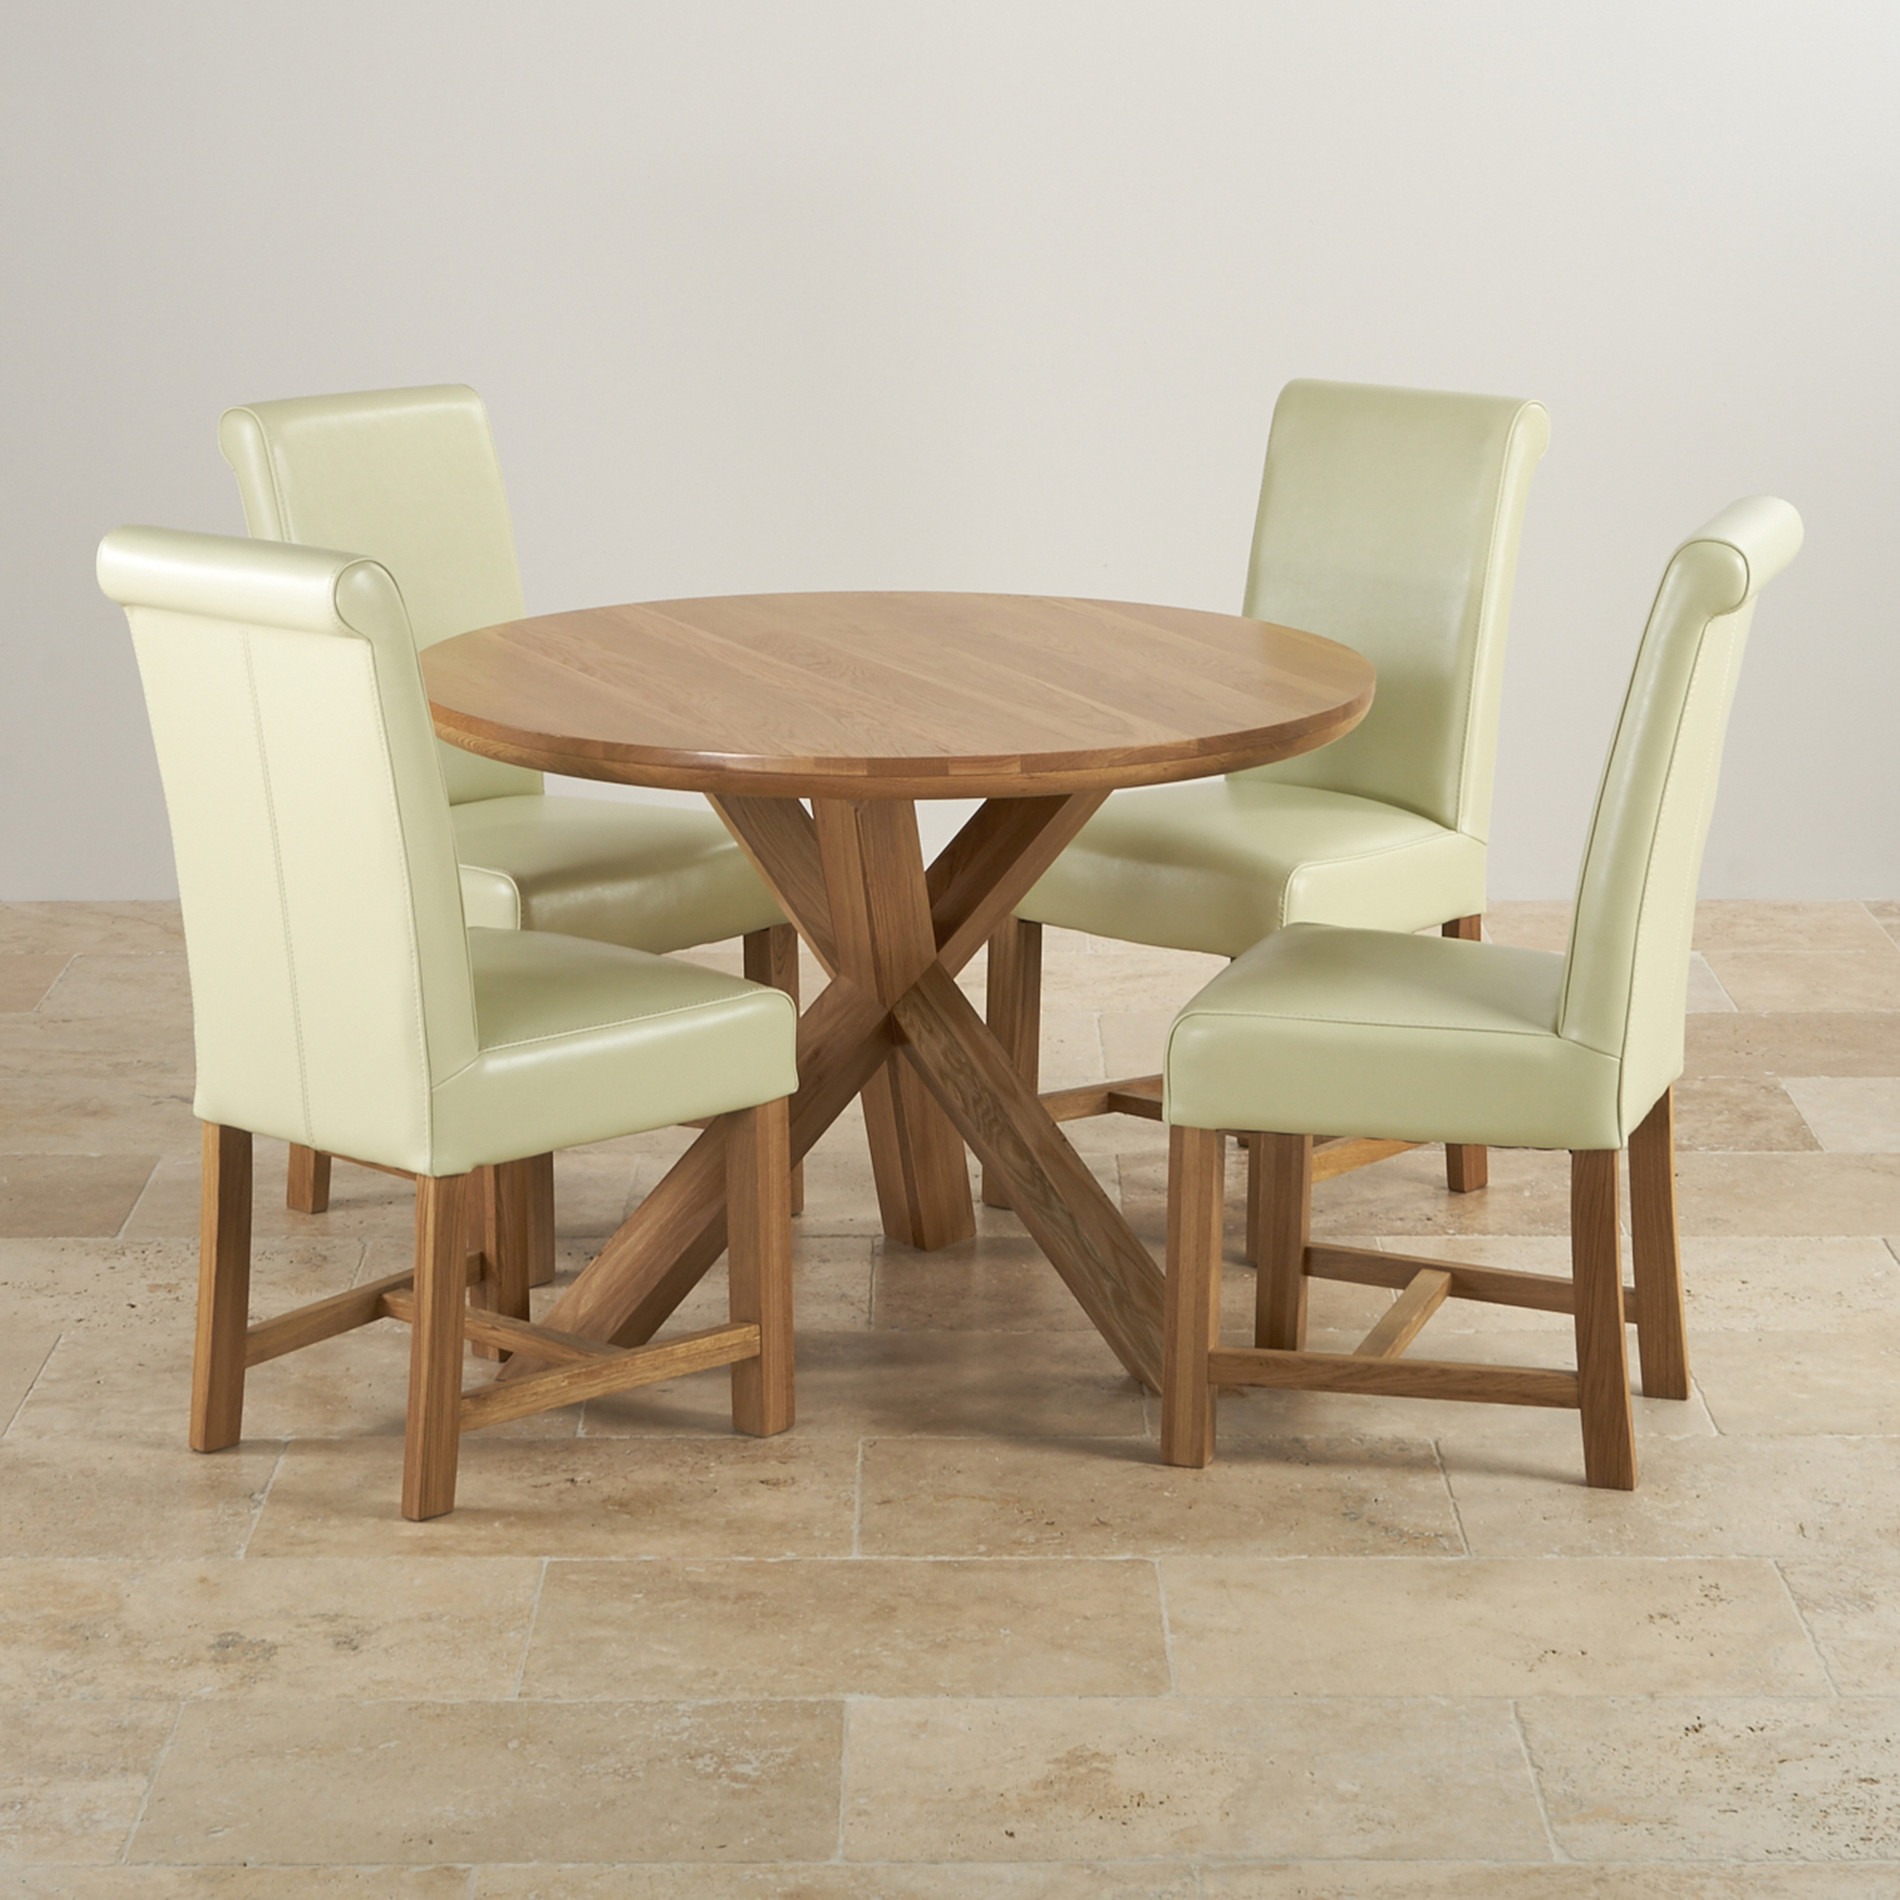 Custom Delivery Natural Solid Oak Dining Set   3ft 7  Round Table with 4  Braced Scroll BackDining Table Sets   Free Delivery   Oak Furniture Land. Oak Dining Chairs With Cream Leather Seats. Home Design Ideas